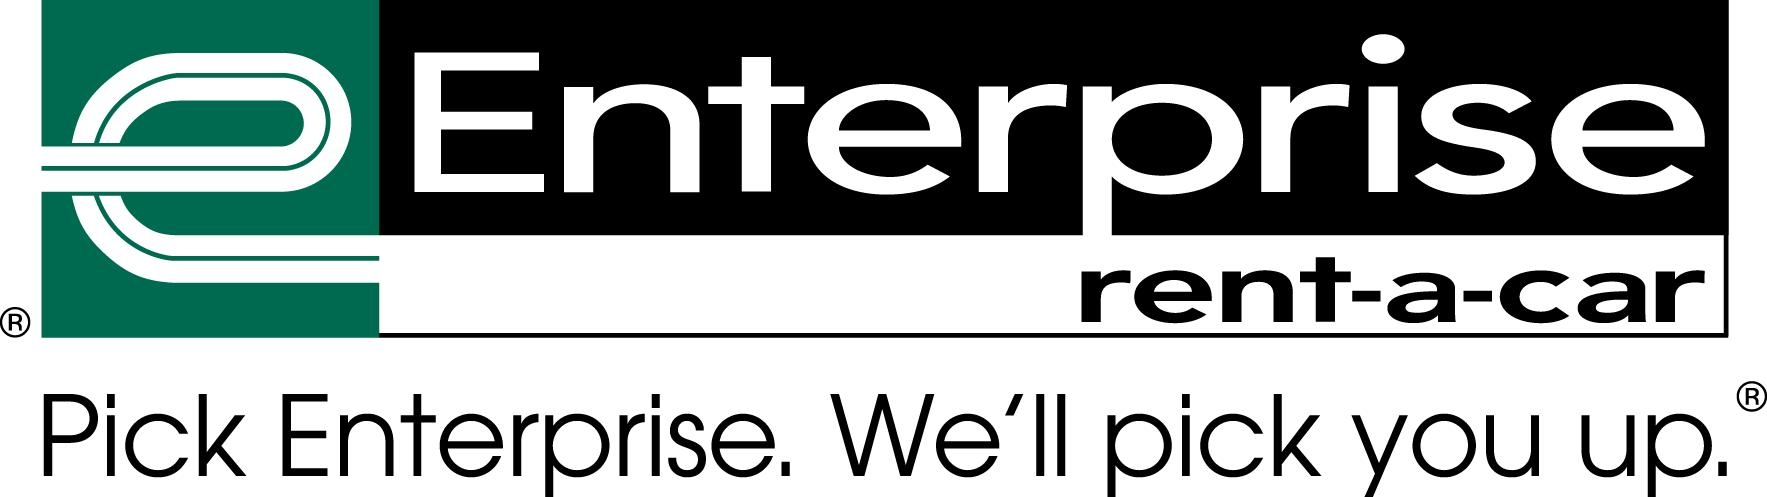 Enterprise Rent A Car Logos